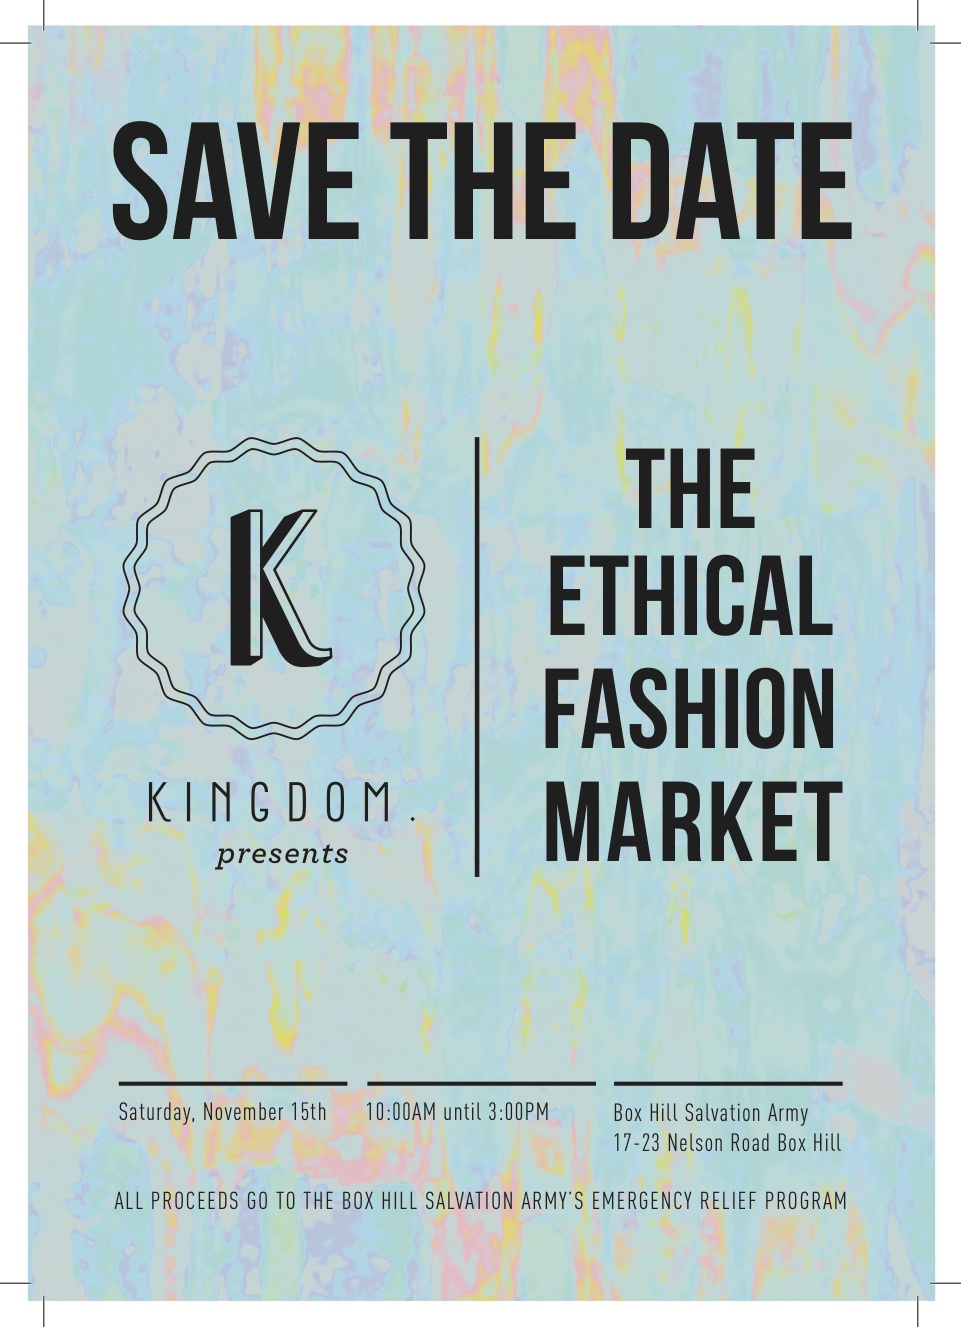 Kingdom-Save The Date-Flyer-01